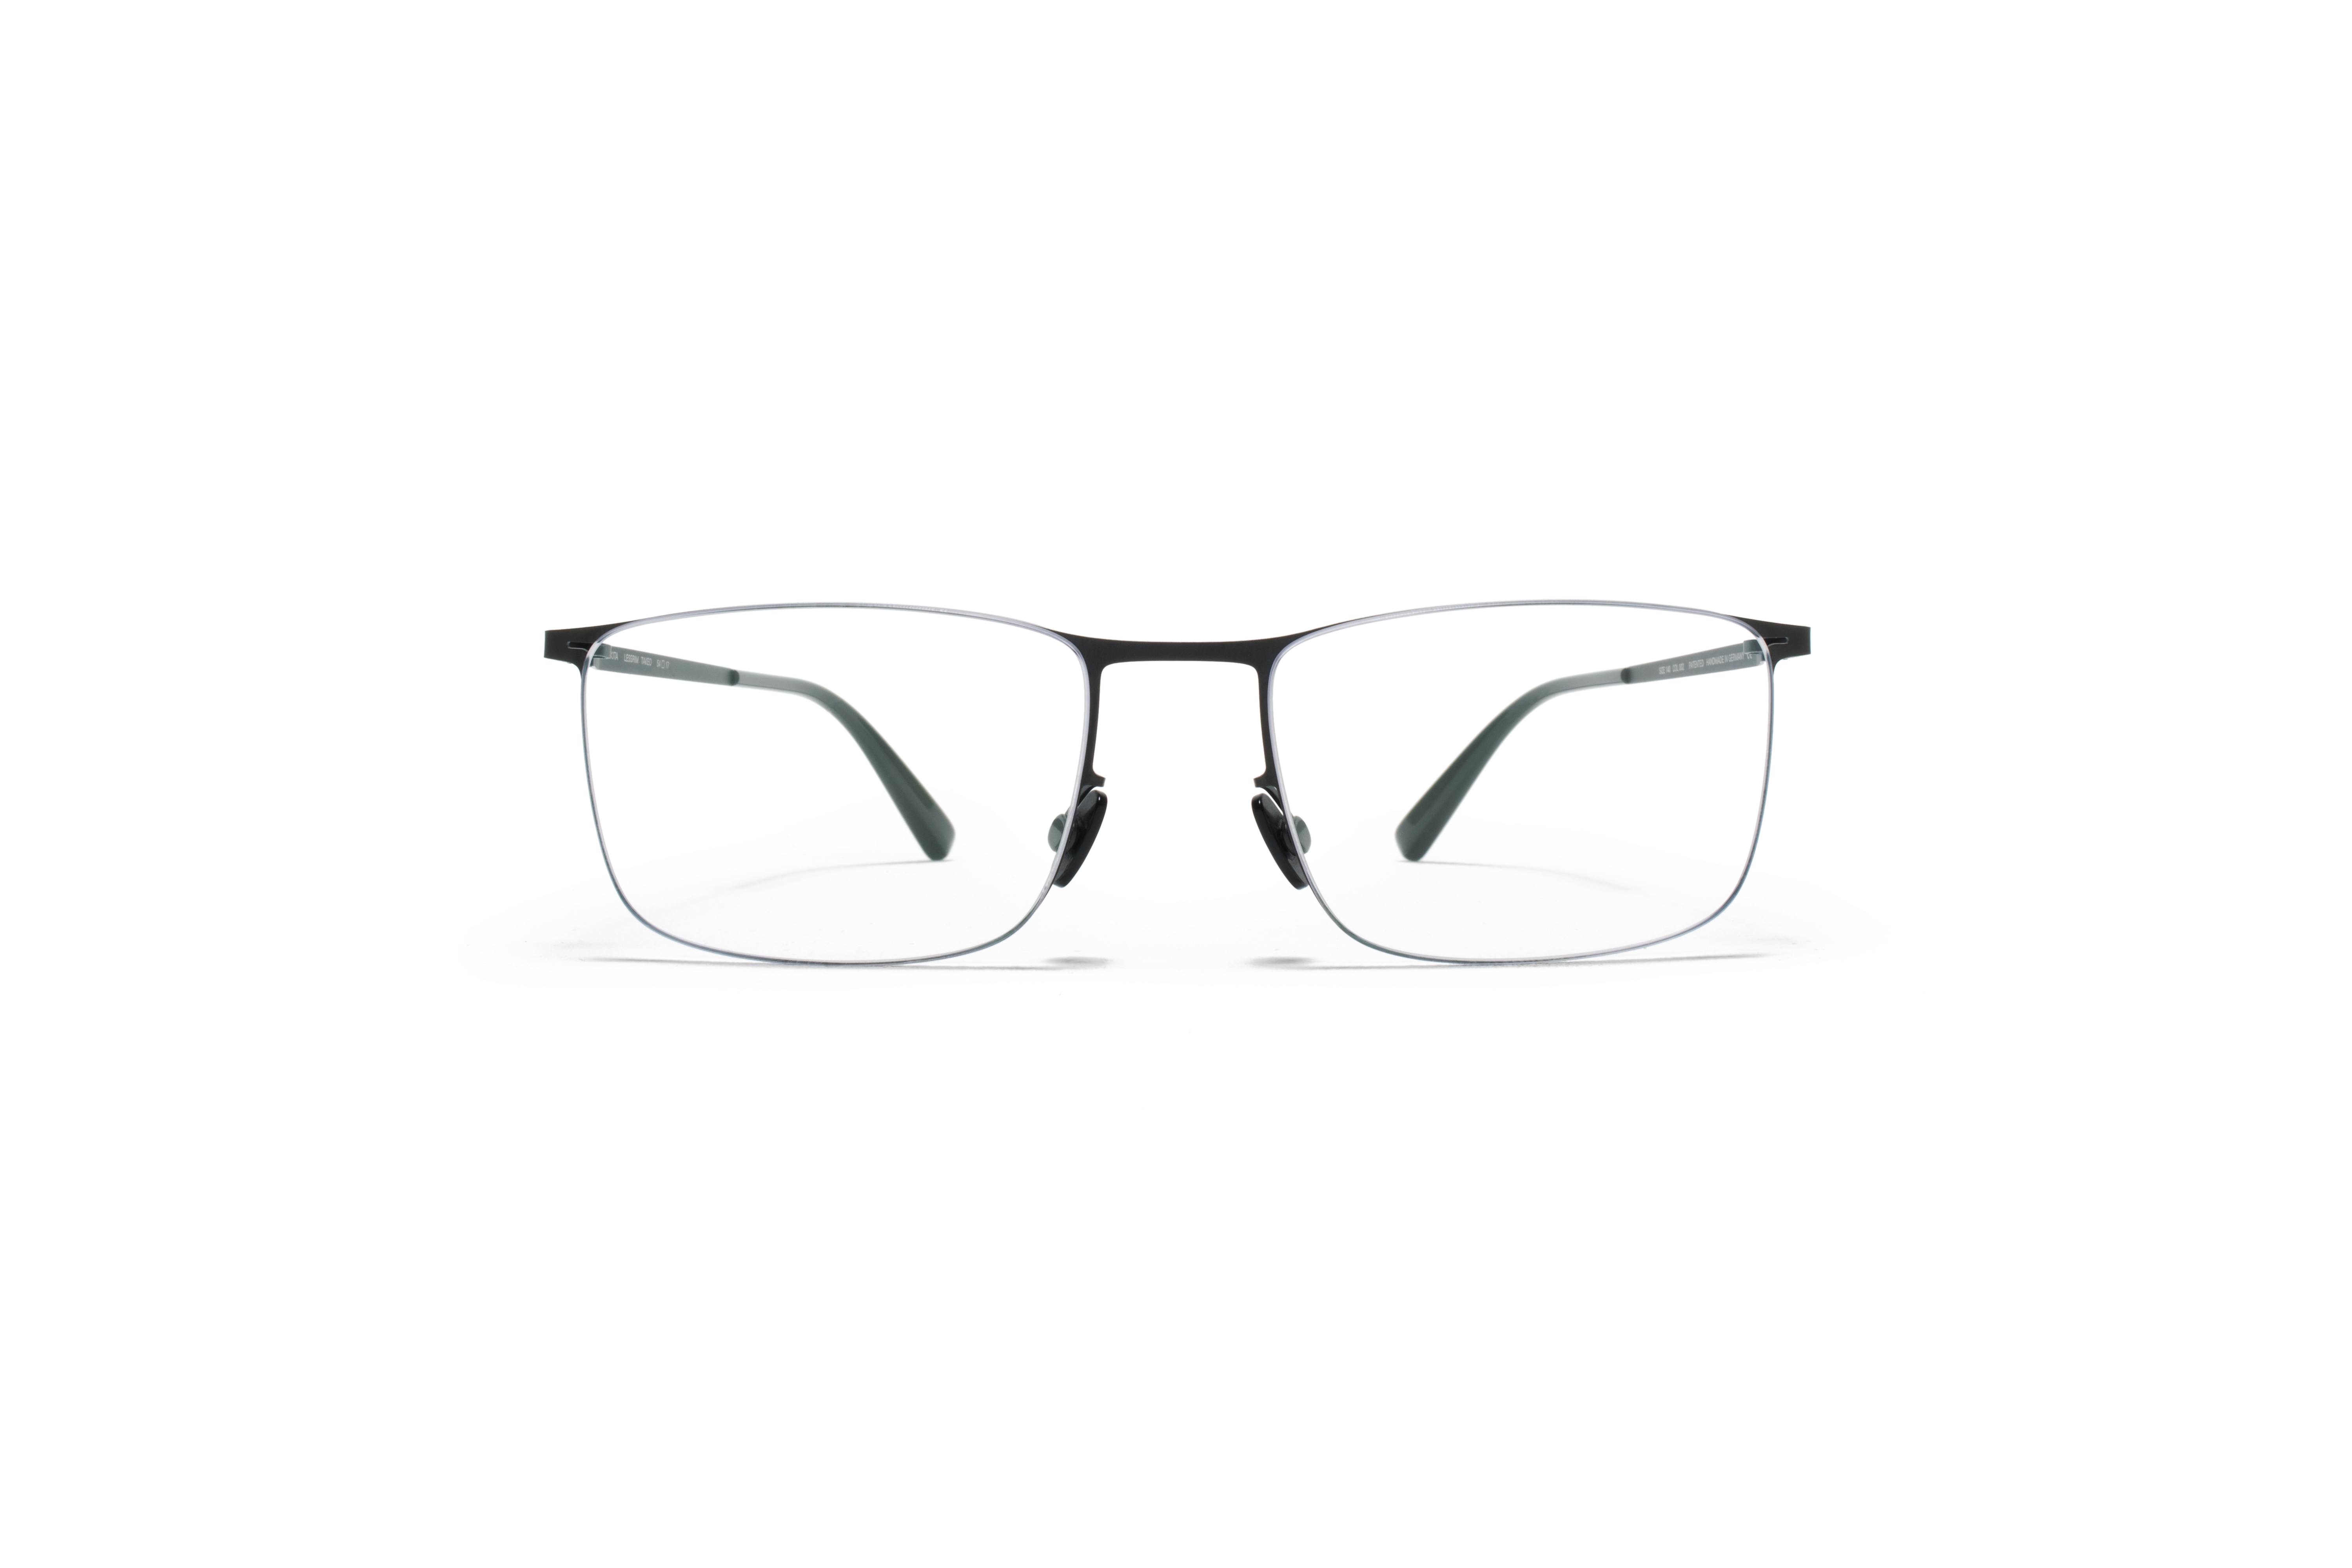 MYKITA Less Rim Rx Takeo Black Clear